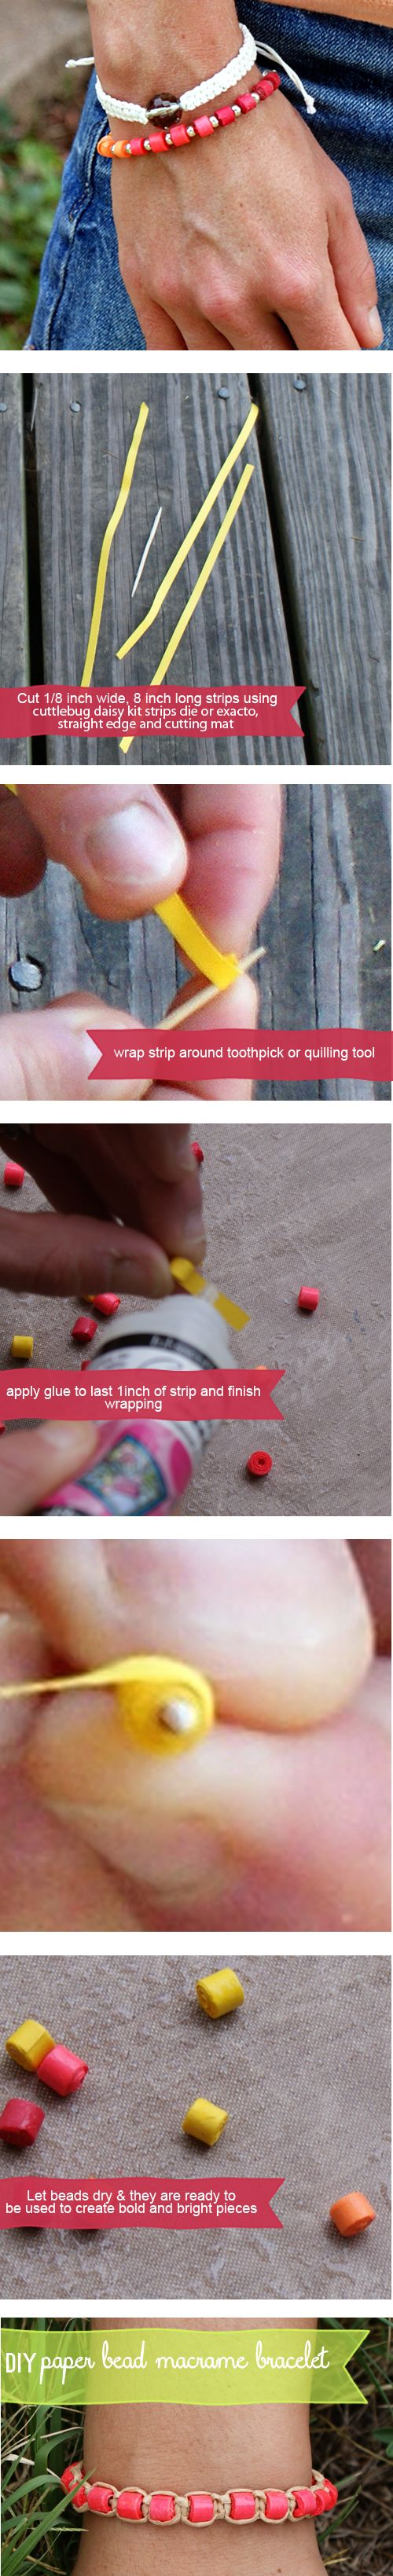 How to Make Paper Beads & Macrame Bracelet with #goastrobrights at savedbylovecreations.com